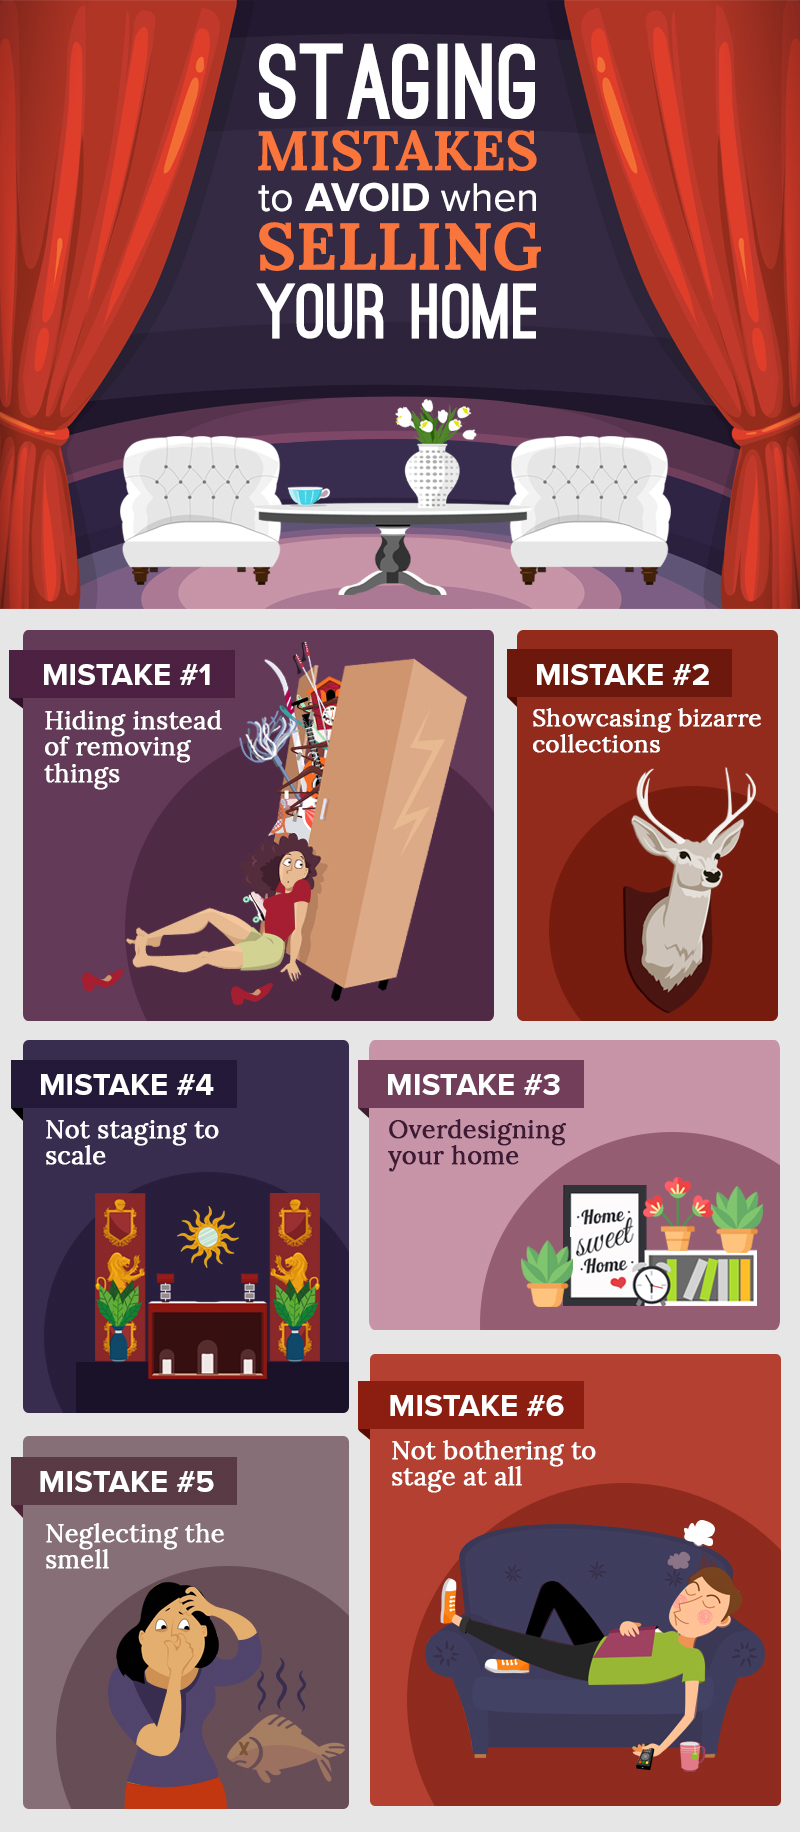 Staging Mistakes To Avoid When Selling Your Home.jpg